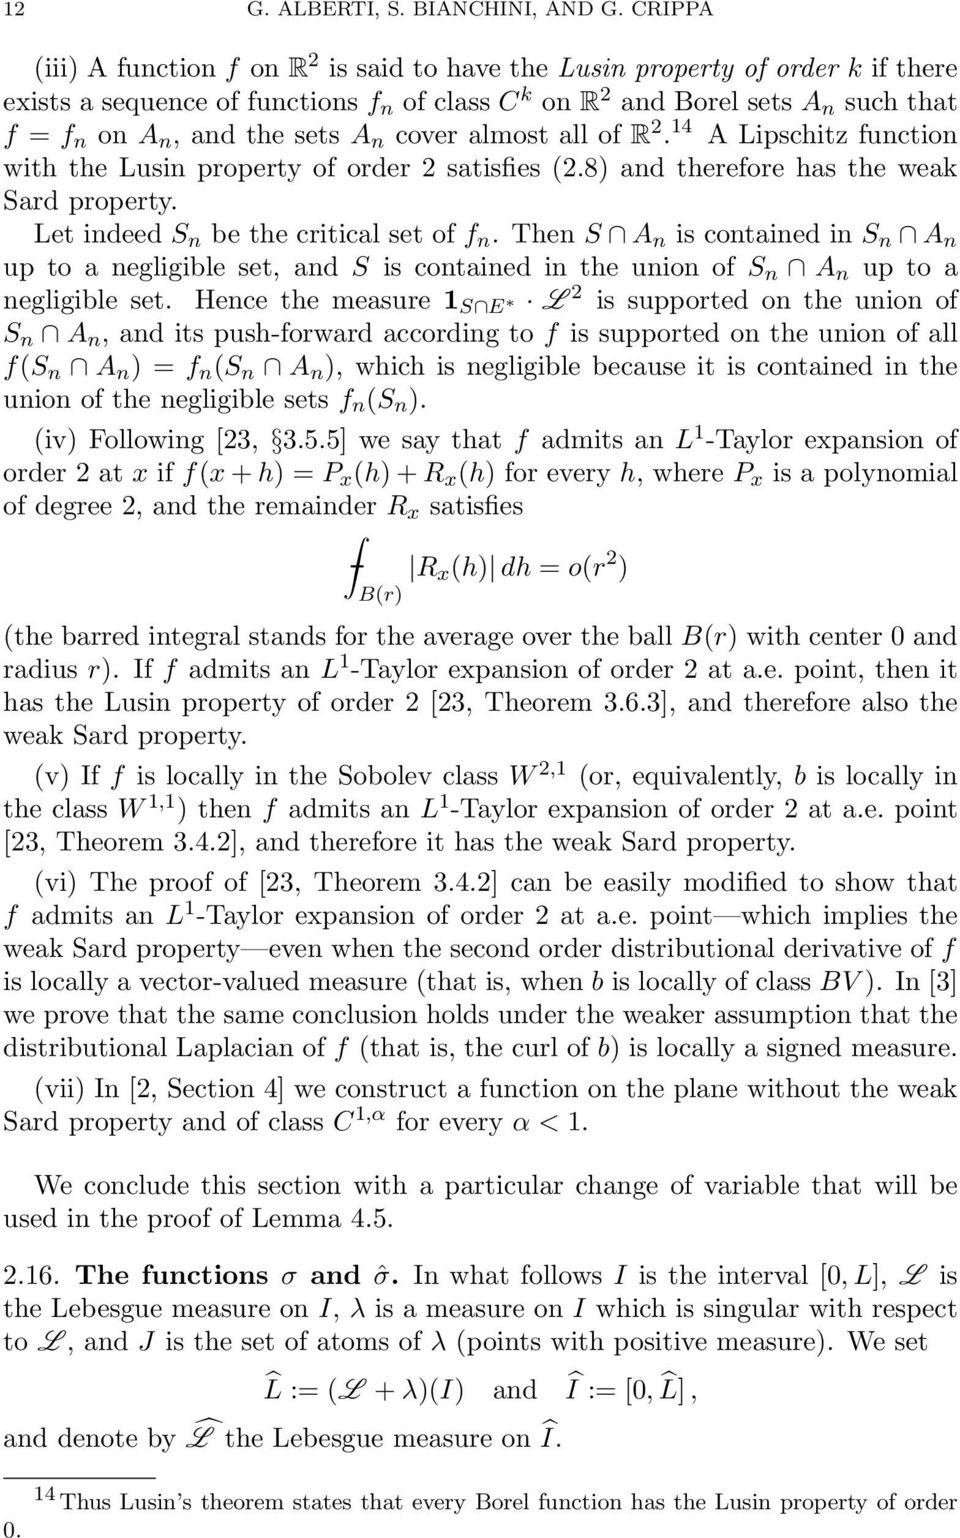 A n cover almost all of R 2. 14 A Lipschitz function with the Lusin property of order 2 satisfies 2.8) and therefore has the weak Sard property. Let indeed S n be the critical set of f n.